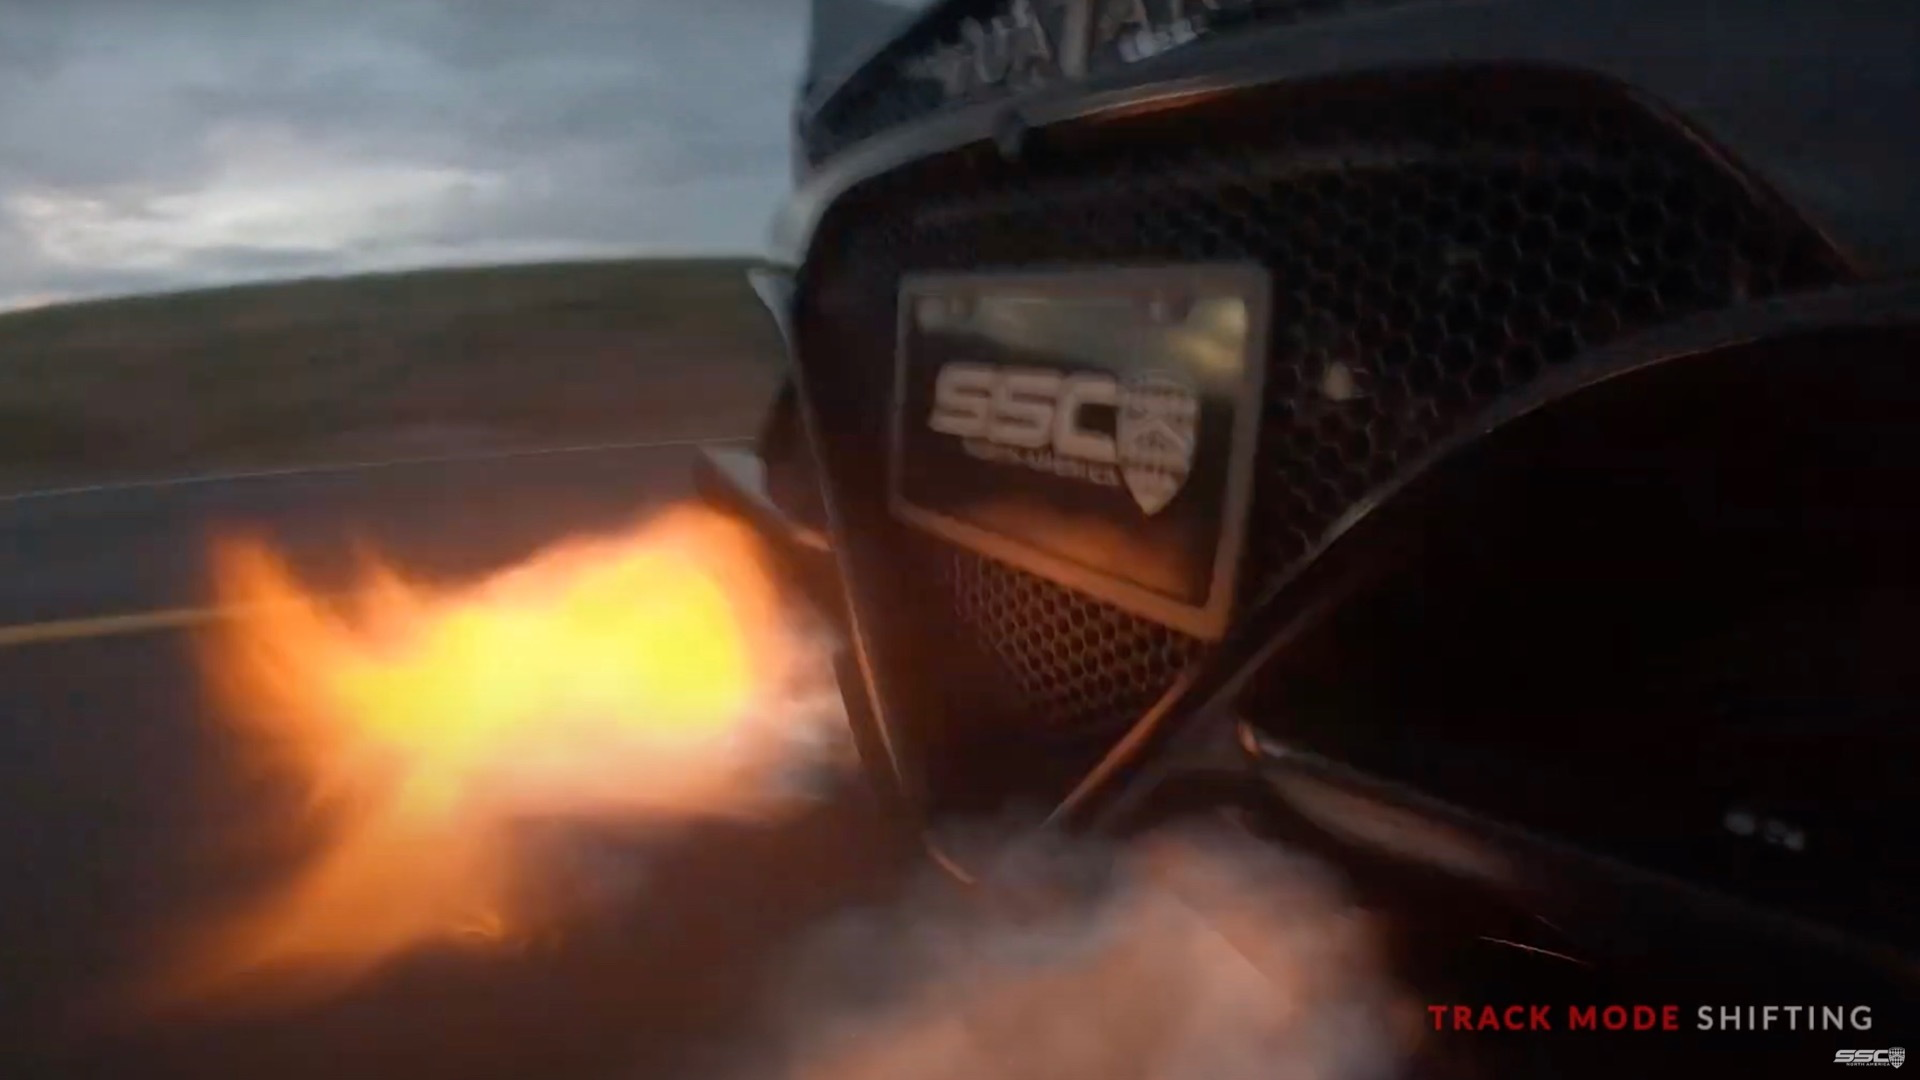 SSC Tuatara shoots fire while shifting in Track Mode